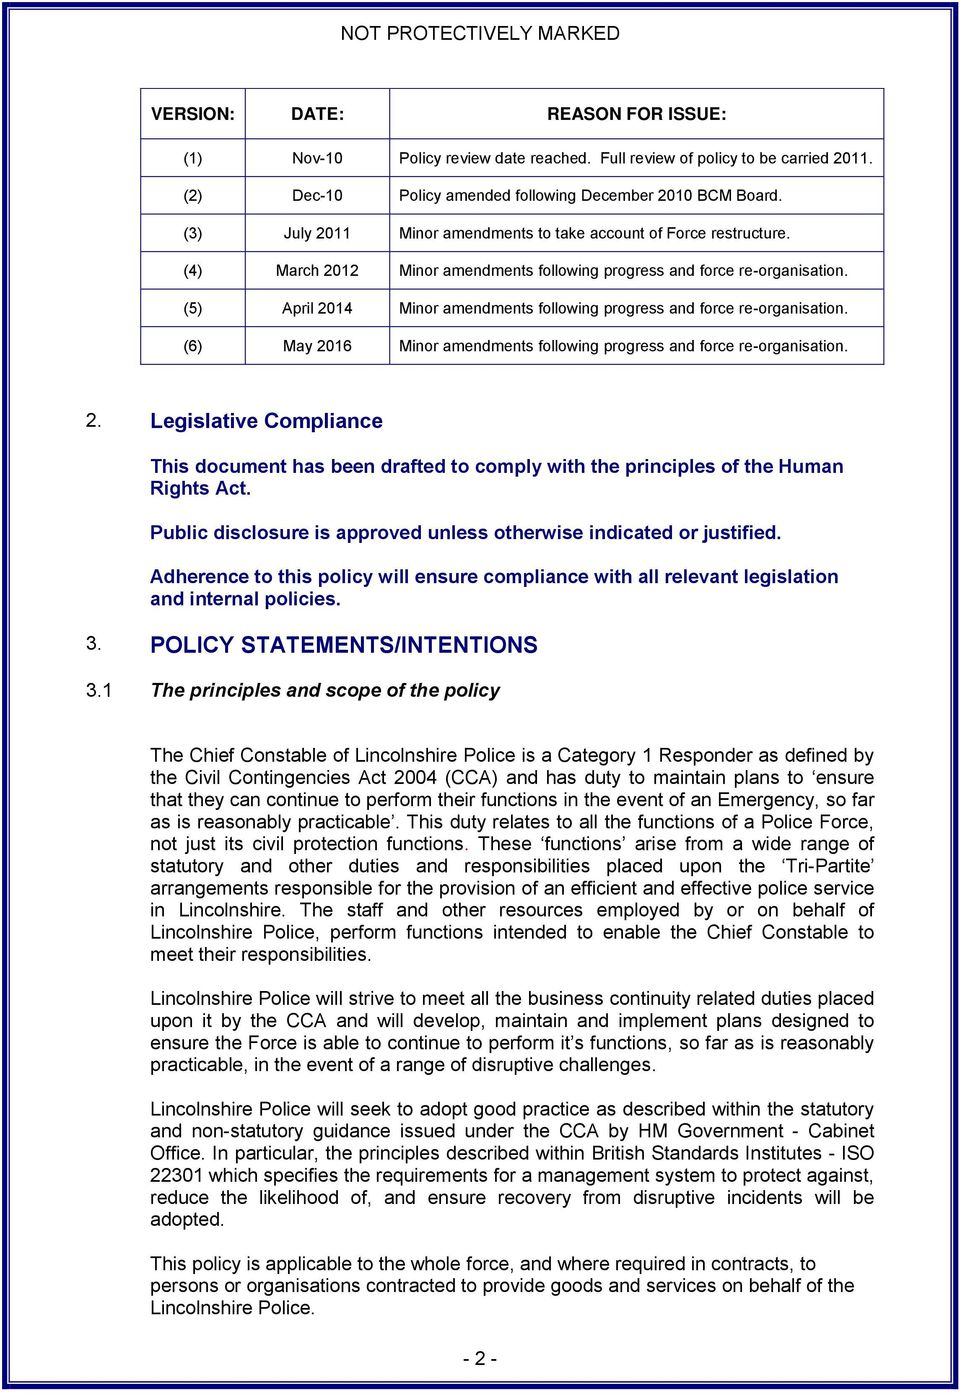 (5) April 2014 Minor amendments following progress and force re-organisation. (6) May 2016 Minor amendments following progress and force re-organisation. 2. Legislative Compliance This document has been drafted to comply with the principles of the Human Rights Act.